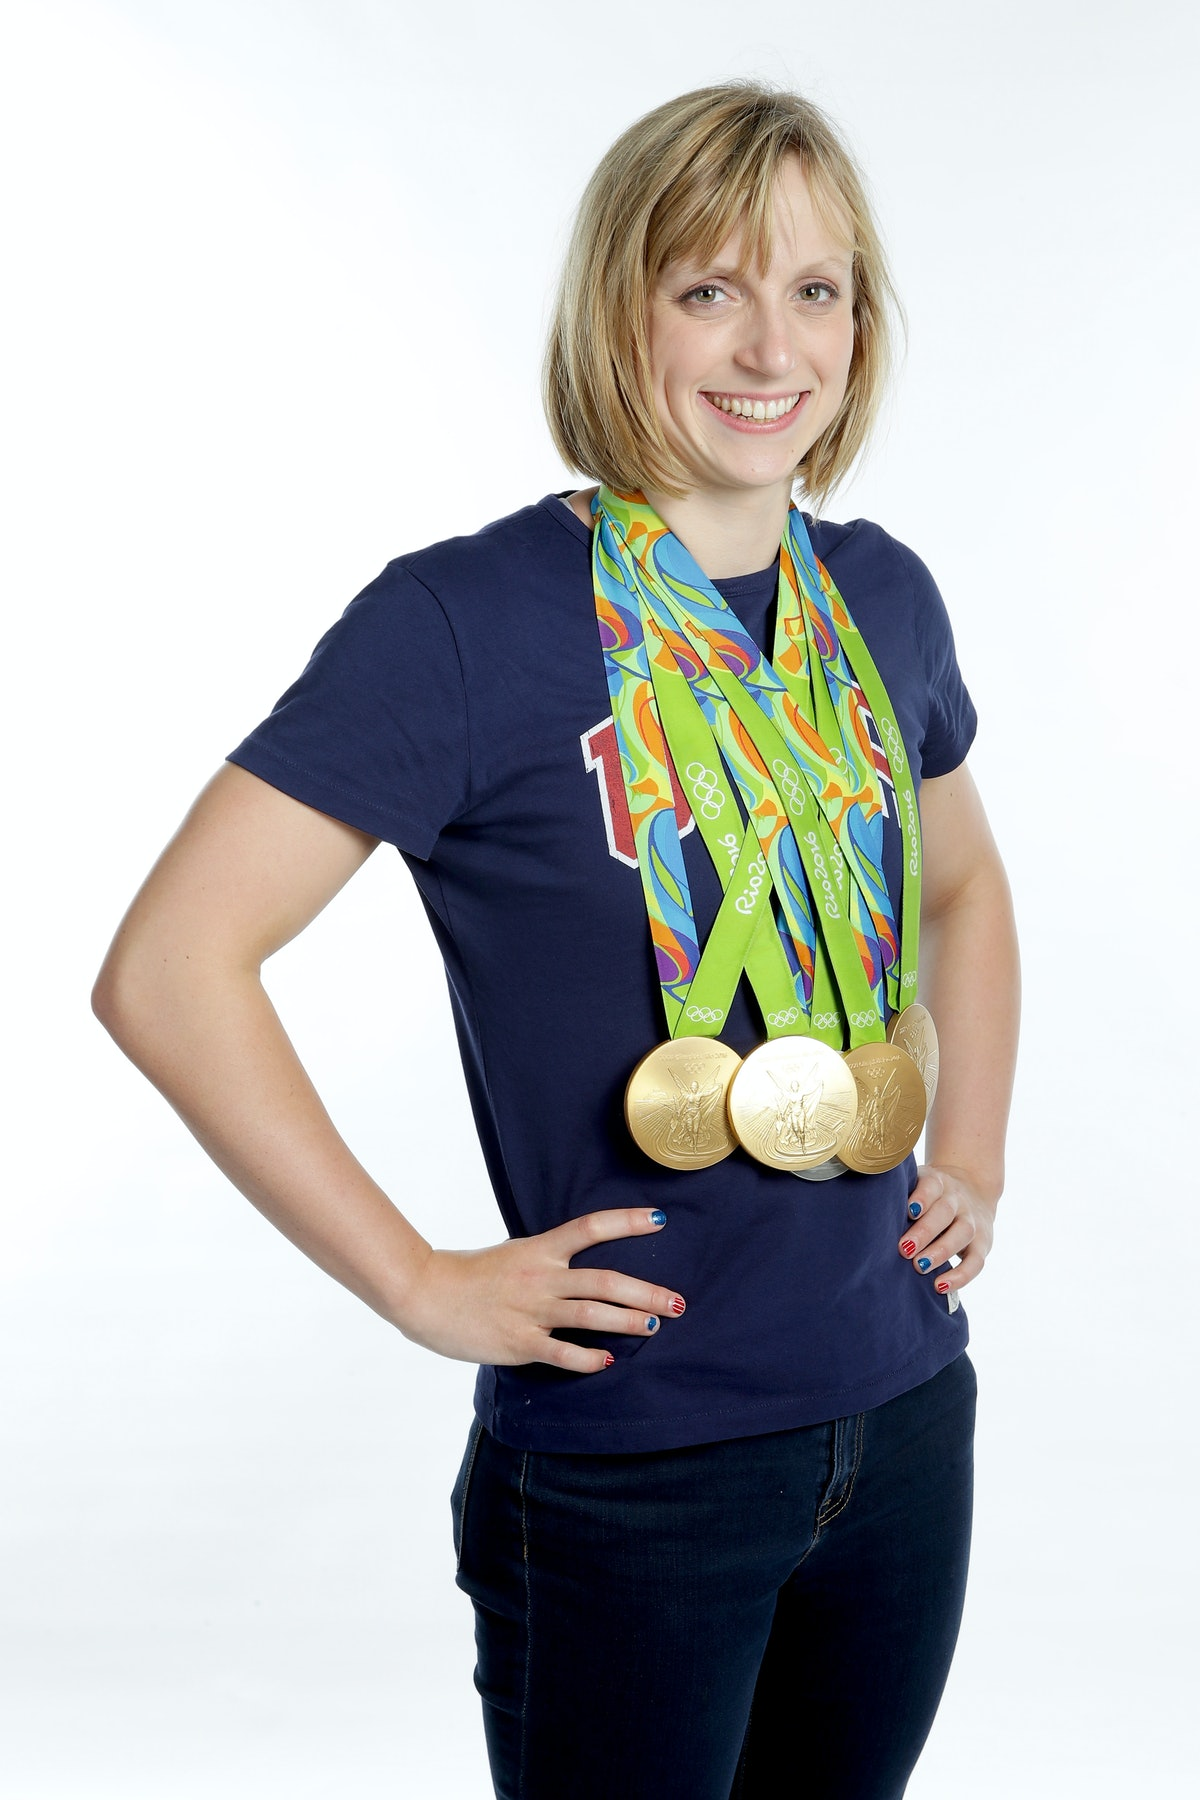 Katie Ledecky doesn't speak about her dating life.